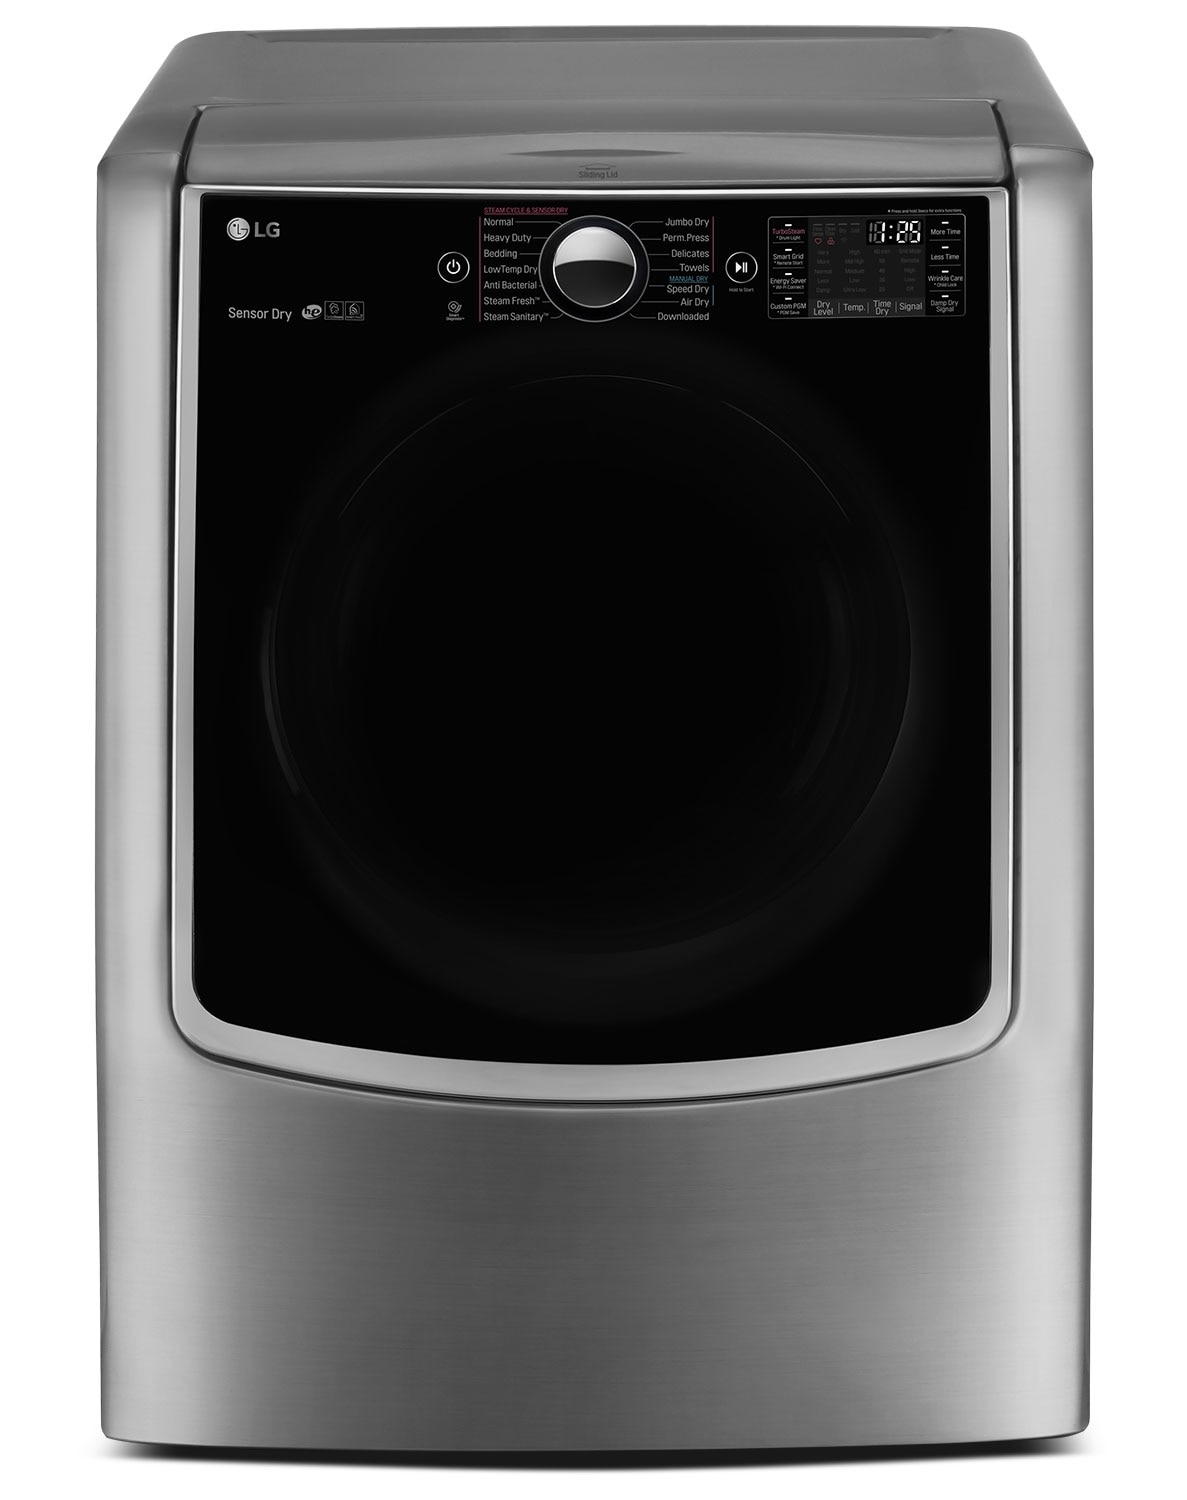 Washers and Dryers - LG 9.0 Cu. Ft. Mega Capacity Gas Steam Dryer – Graphite Steel